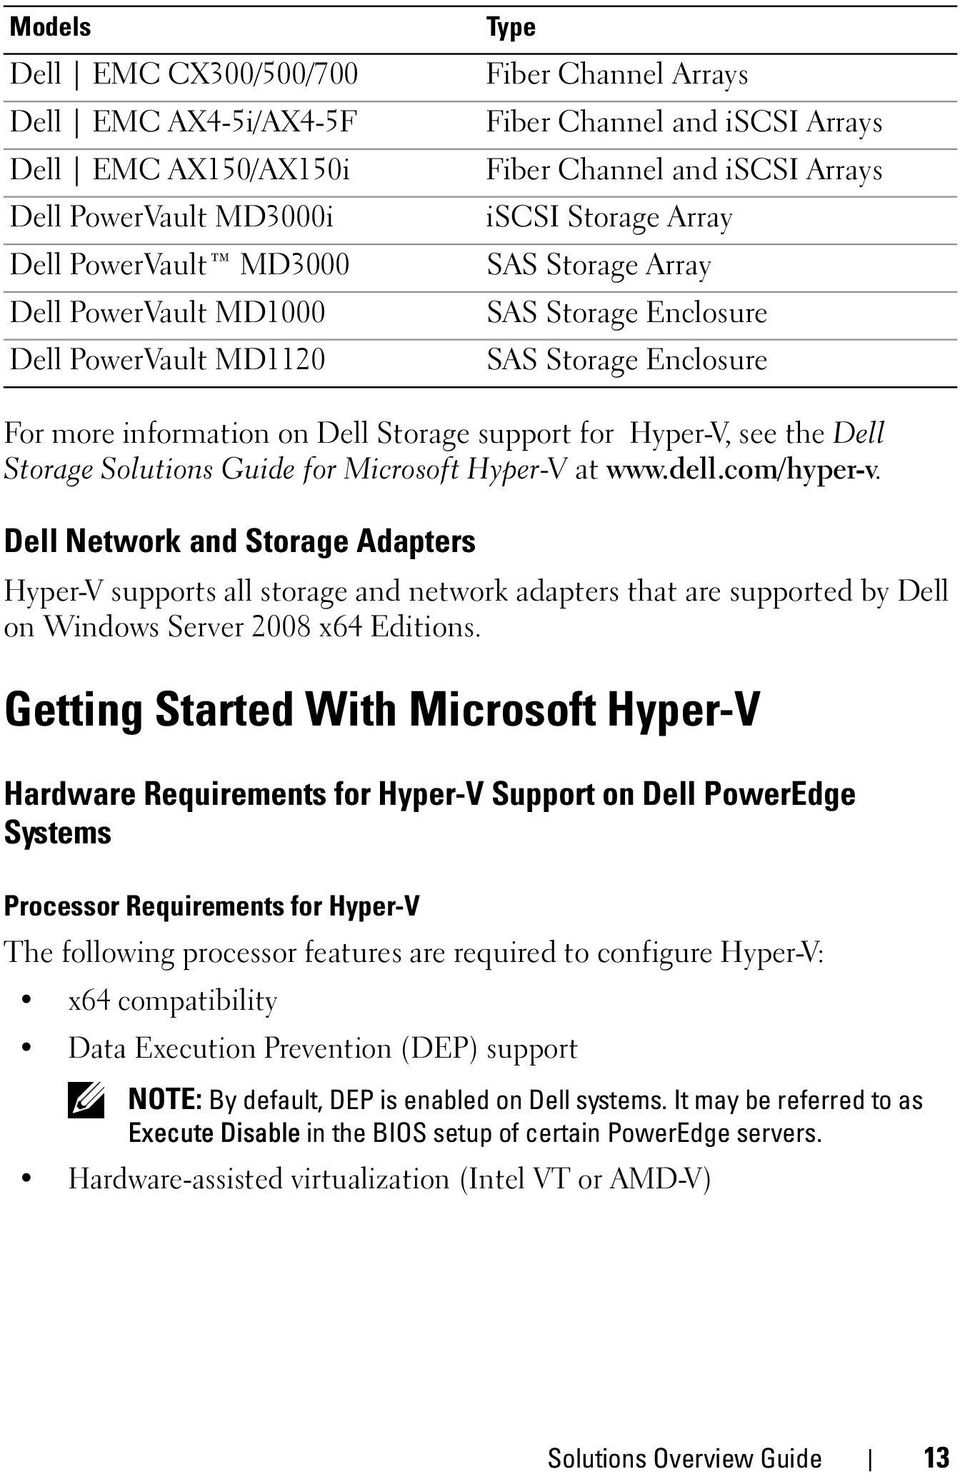 the Dell Storage Solutions Guide for Microsoft Hyper-V at www.dell.com/hyper-v.